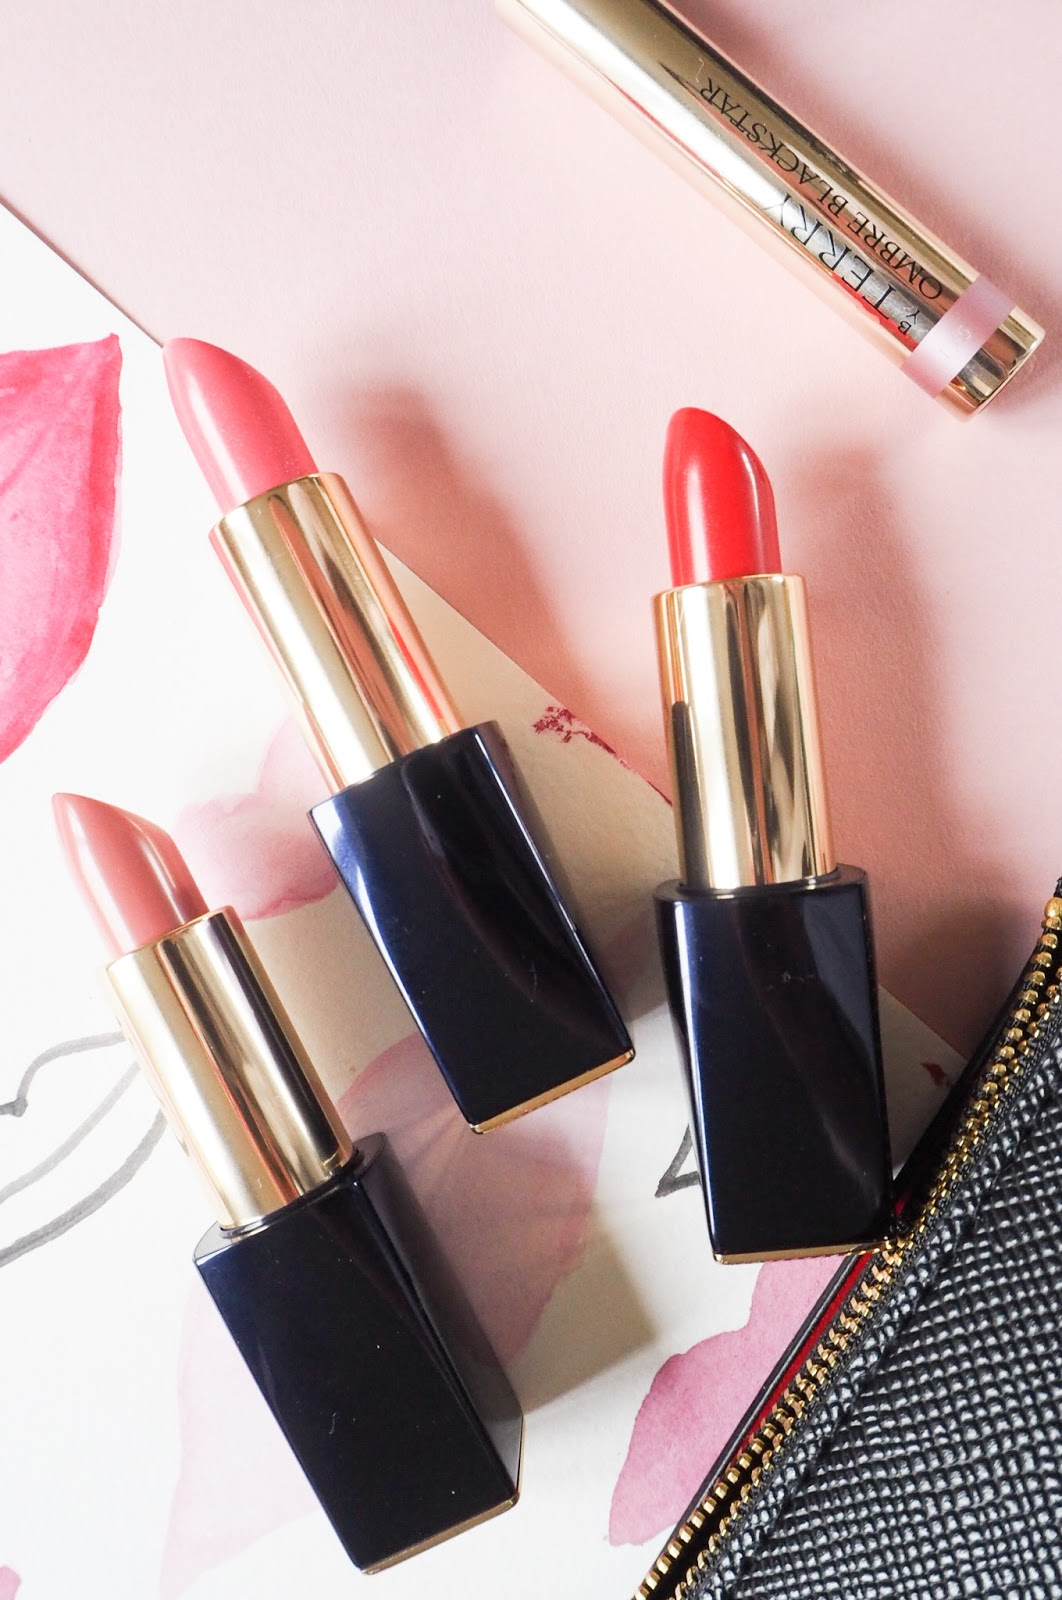 Estee Lauder Pure Colour Envy Hi-Lustre Light Sculpting Lipsticks in 11 Nude Reveal, 220 Sheer Sin and 320 Drop Dead Red